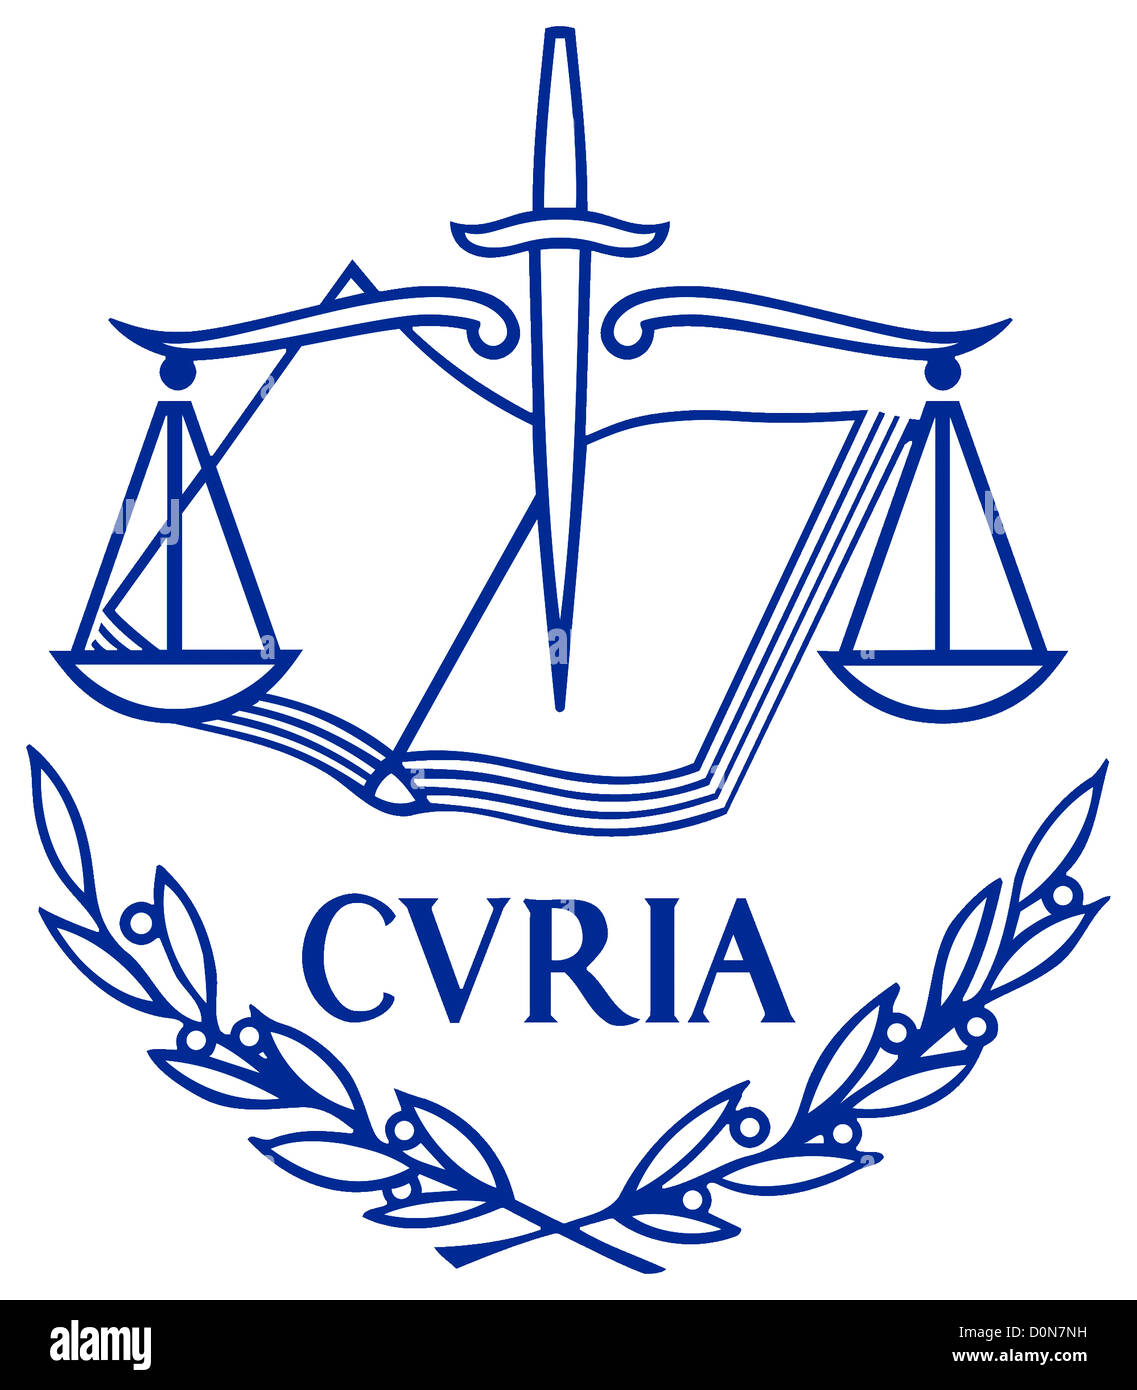 the european court of justice and For several decades, the european court of justice has played an integral role in ensuring the protection of fundamental rights in the community legal order,.